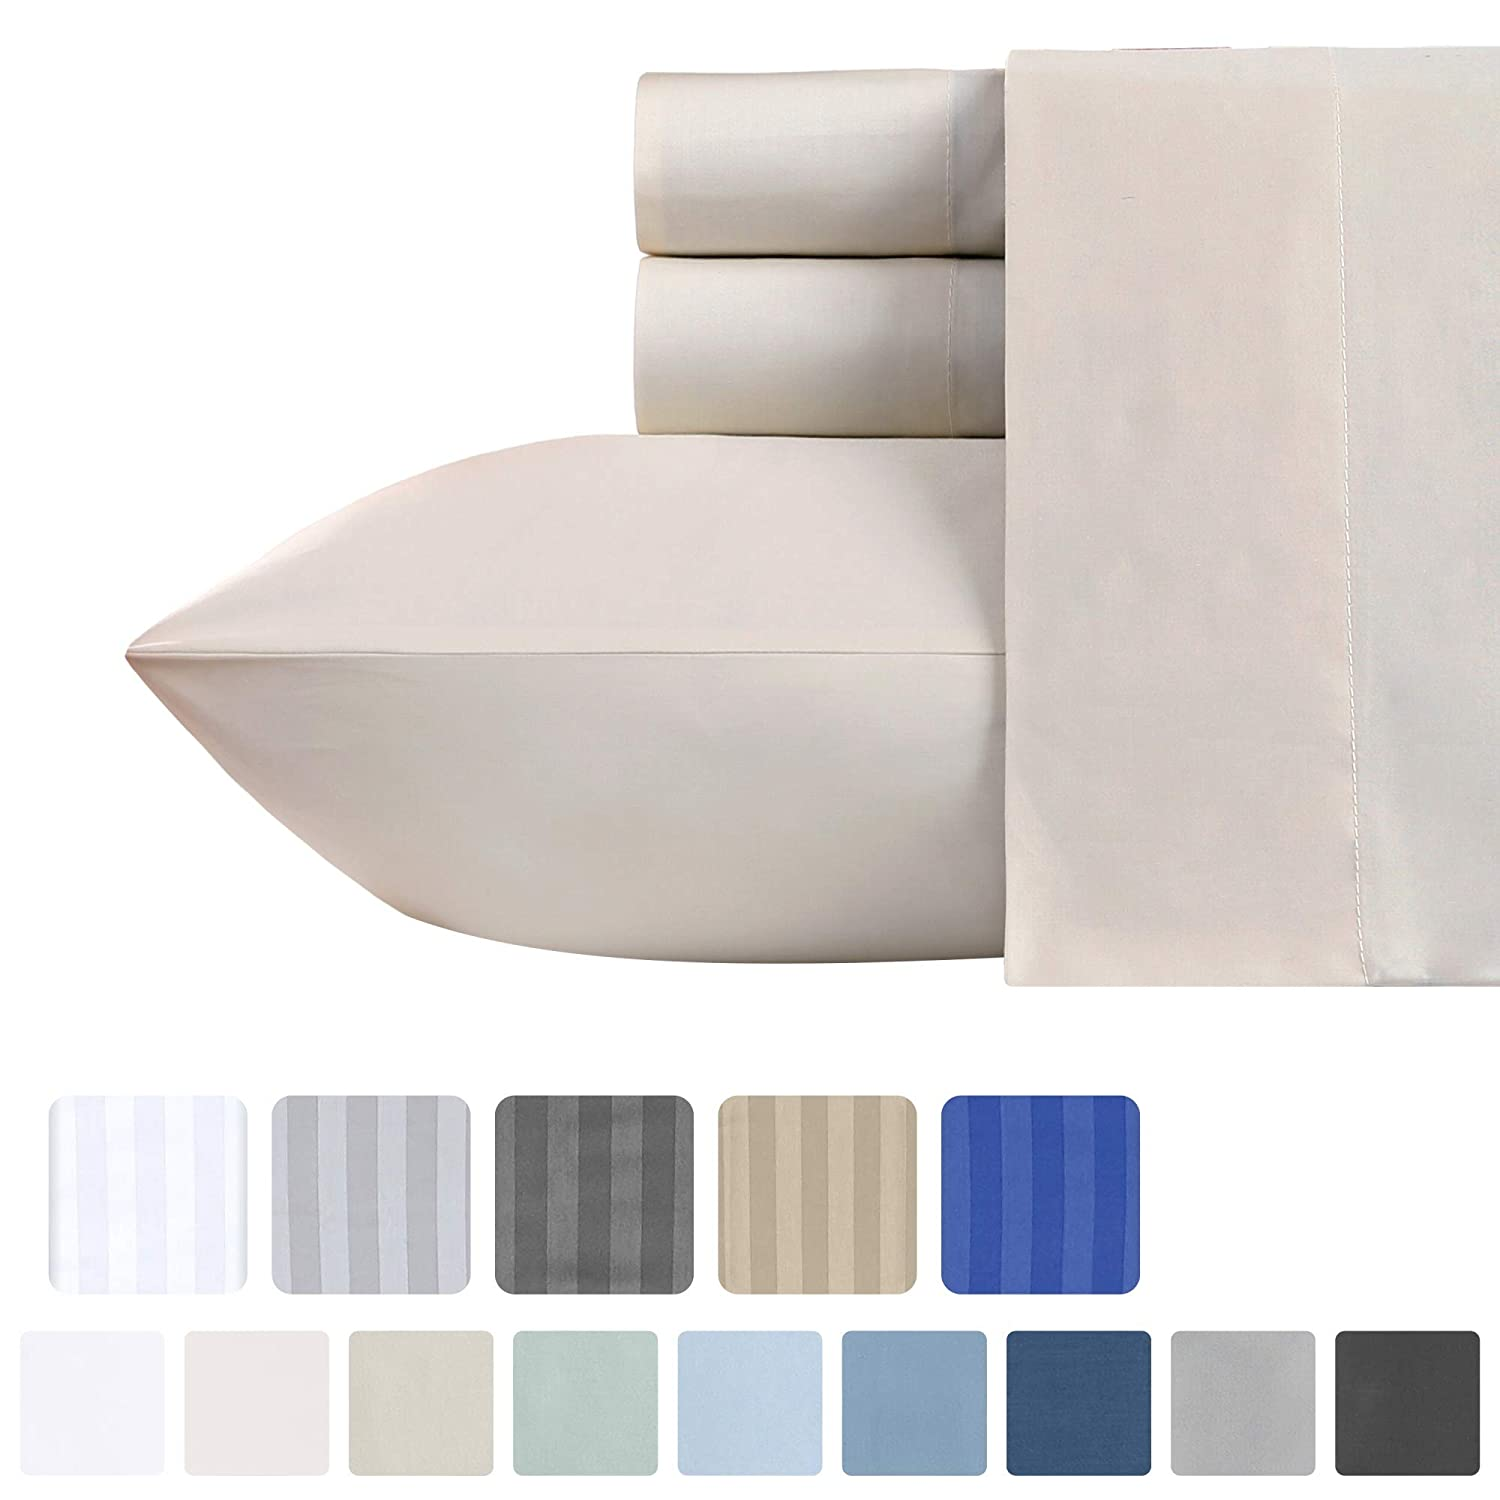 California Design Den 500-Thread-Count Cotton Sateen King Sheets - 4 Piece Solid Ivory Bed Sheet Set, Fade Resistant Smooth Breathable Bed Set, Deep Pocket Fits Mattress Upto 18 Inches